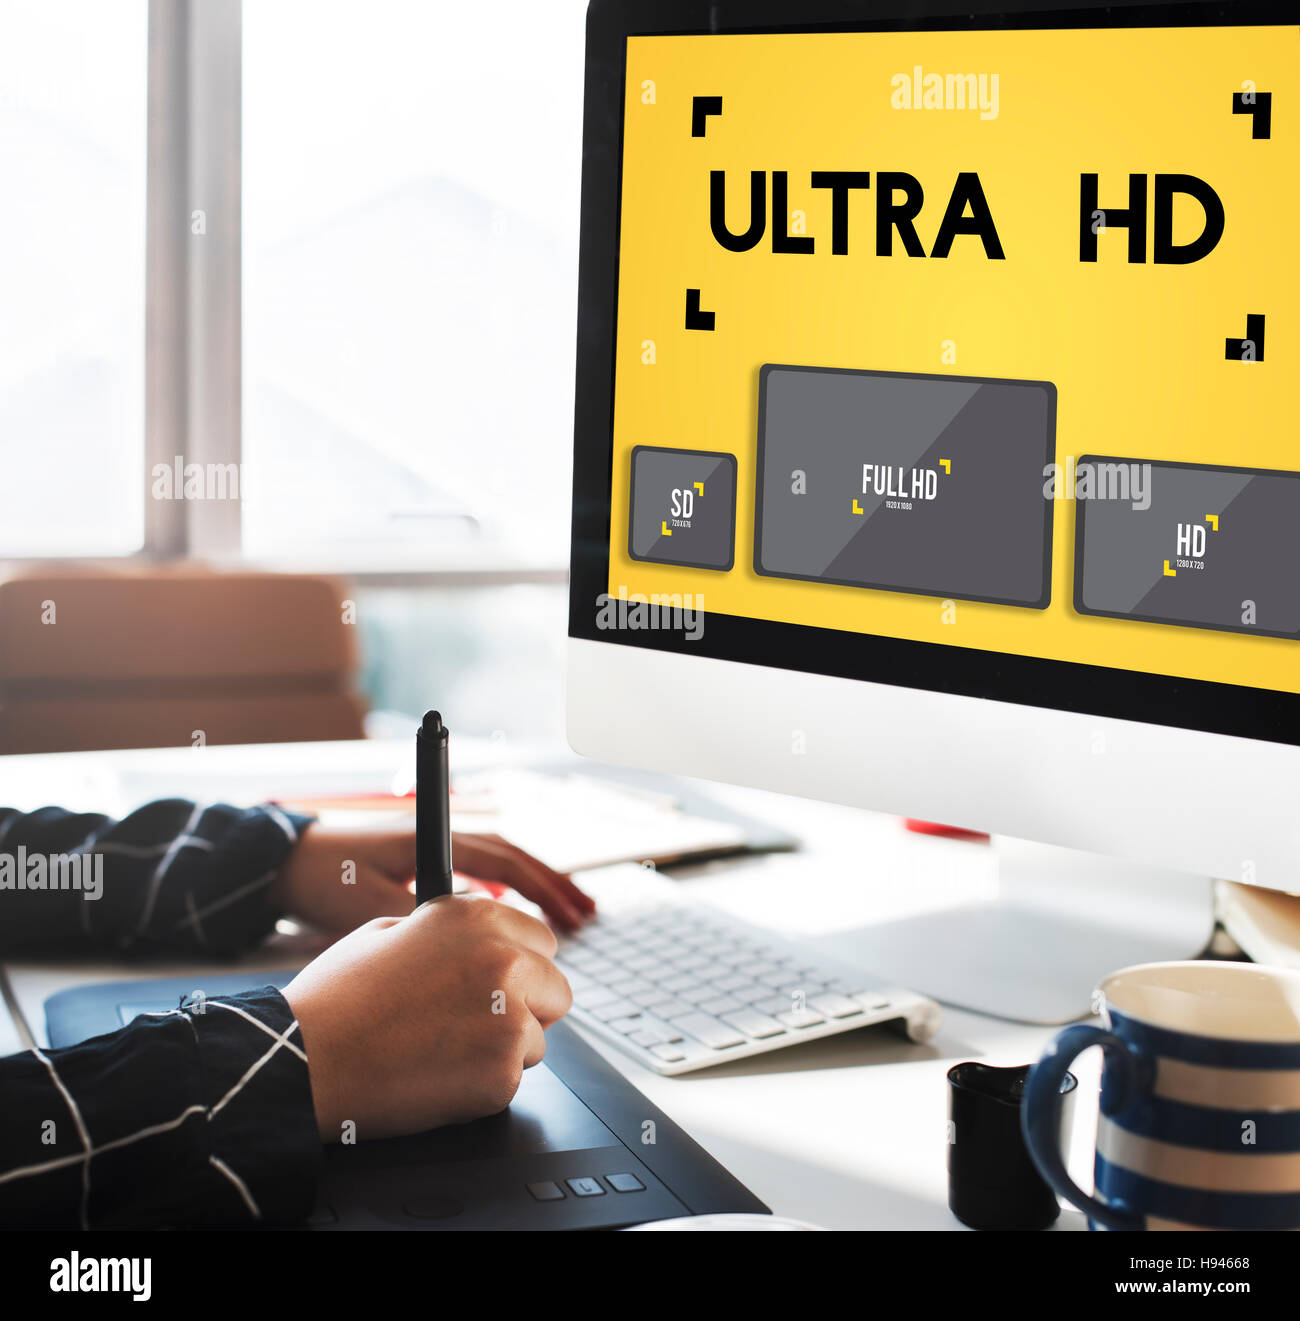 Ultra HD Definition Monitor Resolution Screen Concept - Stock Image